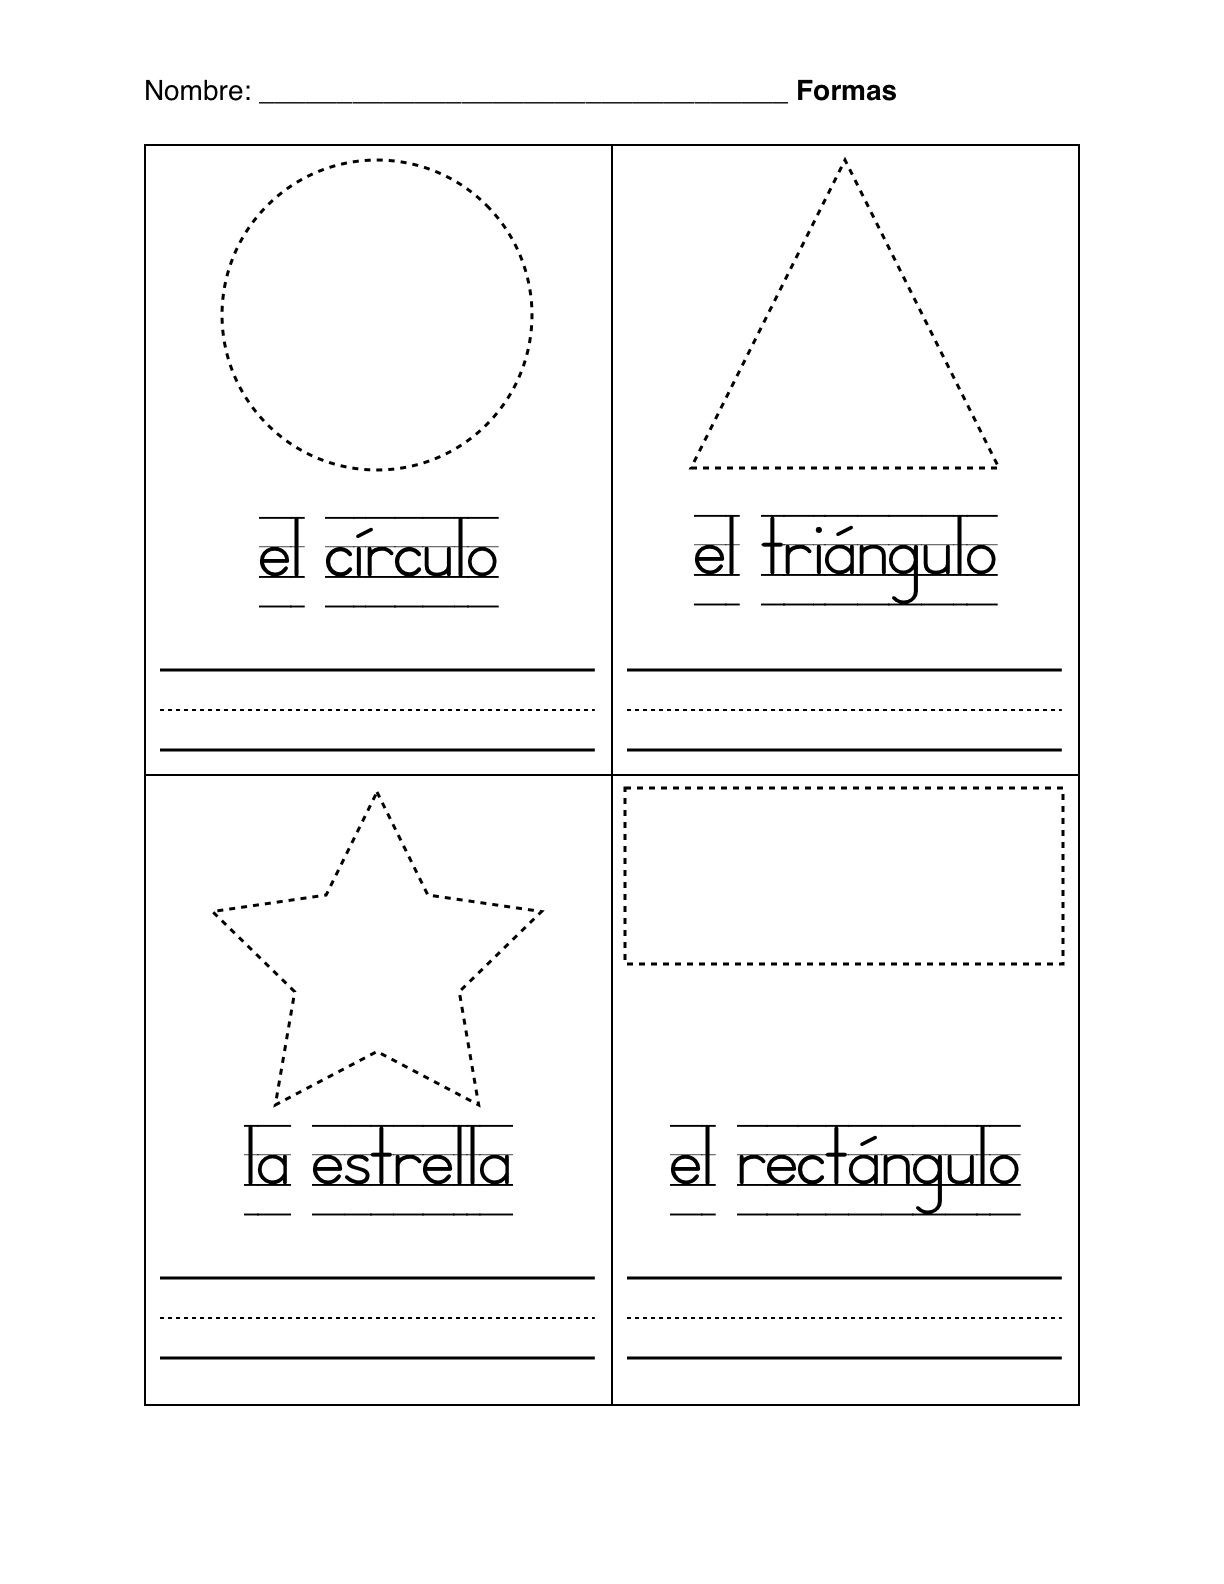 Worksheets Beginning Spanish Worksheets spanish worksheets for kindergarten basic shapes in formas basicas worksheet